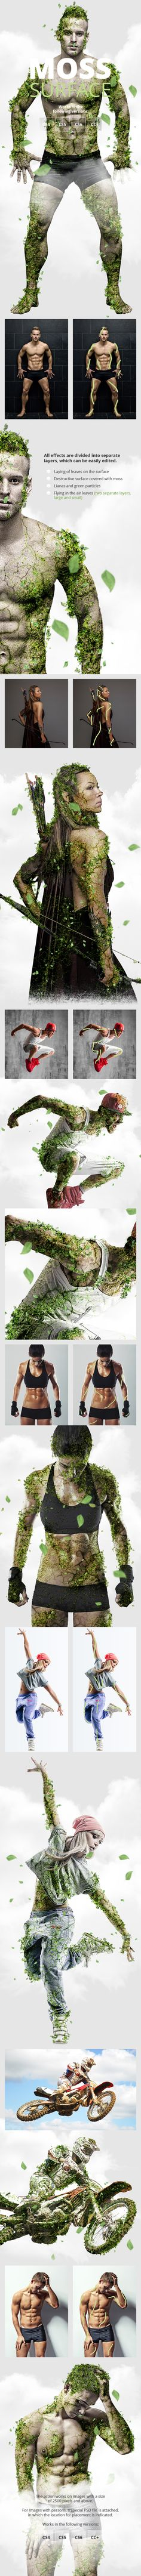 Moss Photoshop Action - Photo Effects Actions - Creative design ideas.